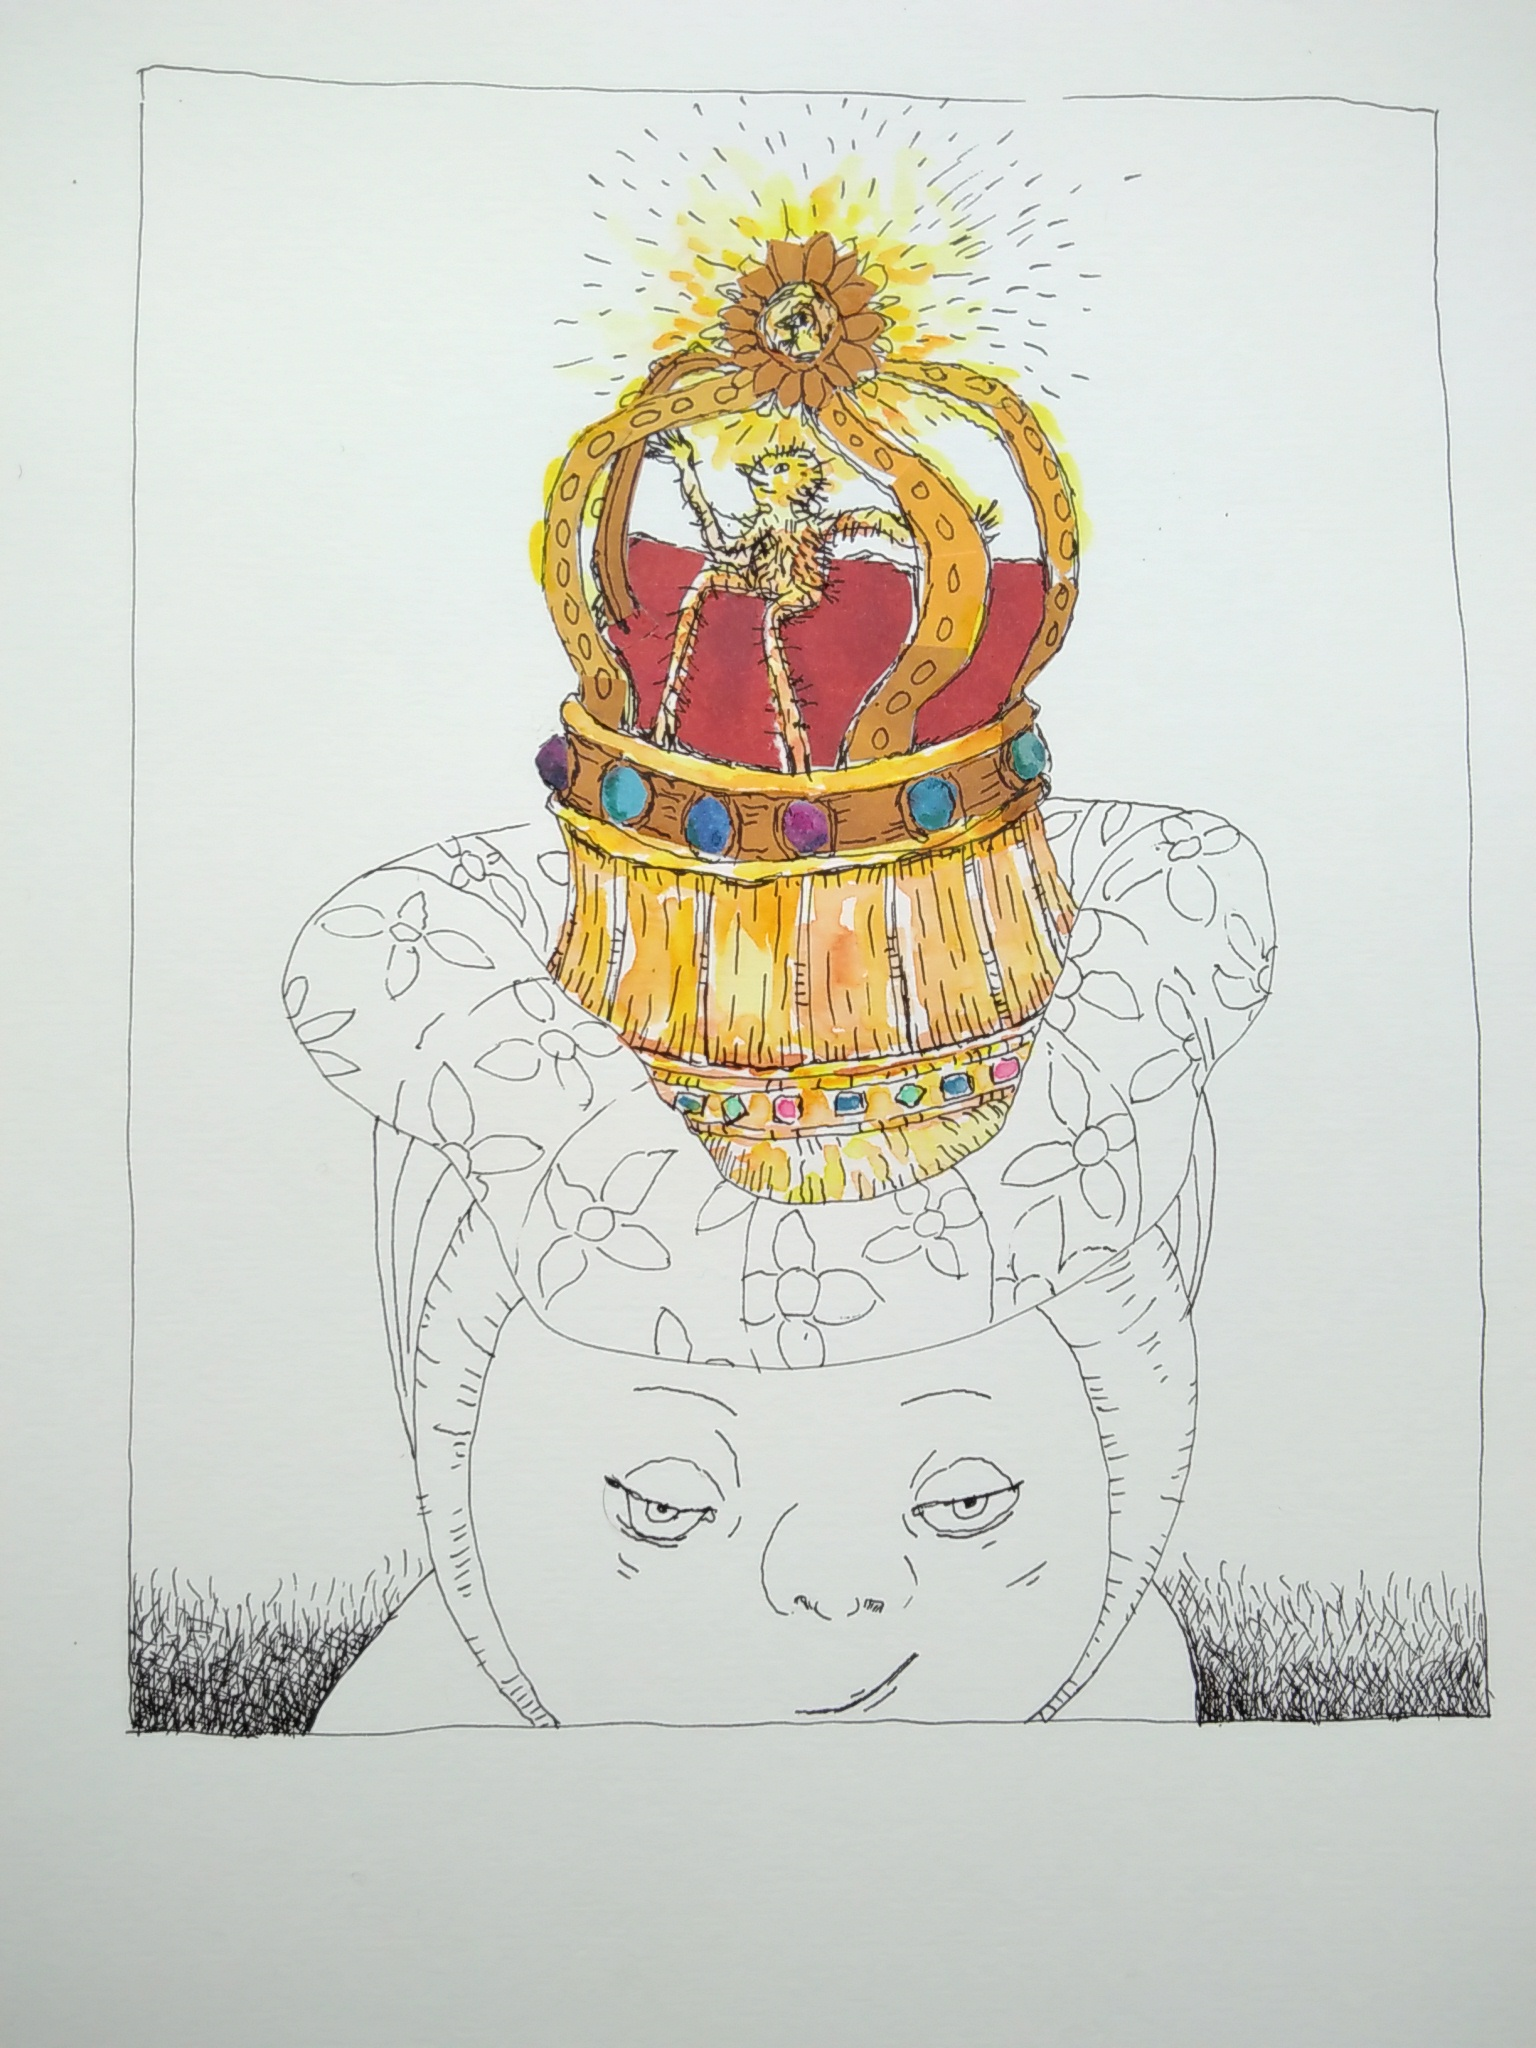 technical pen and colour drawing of head wearing crown